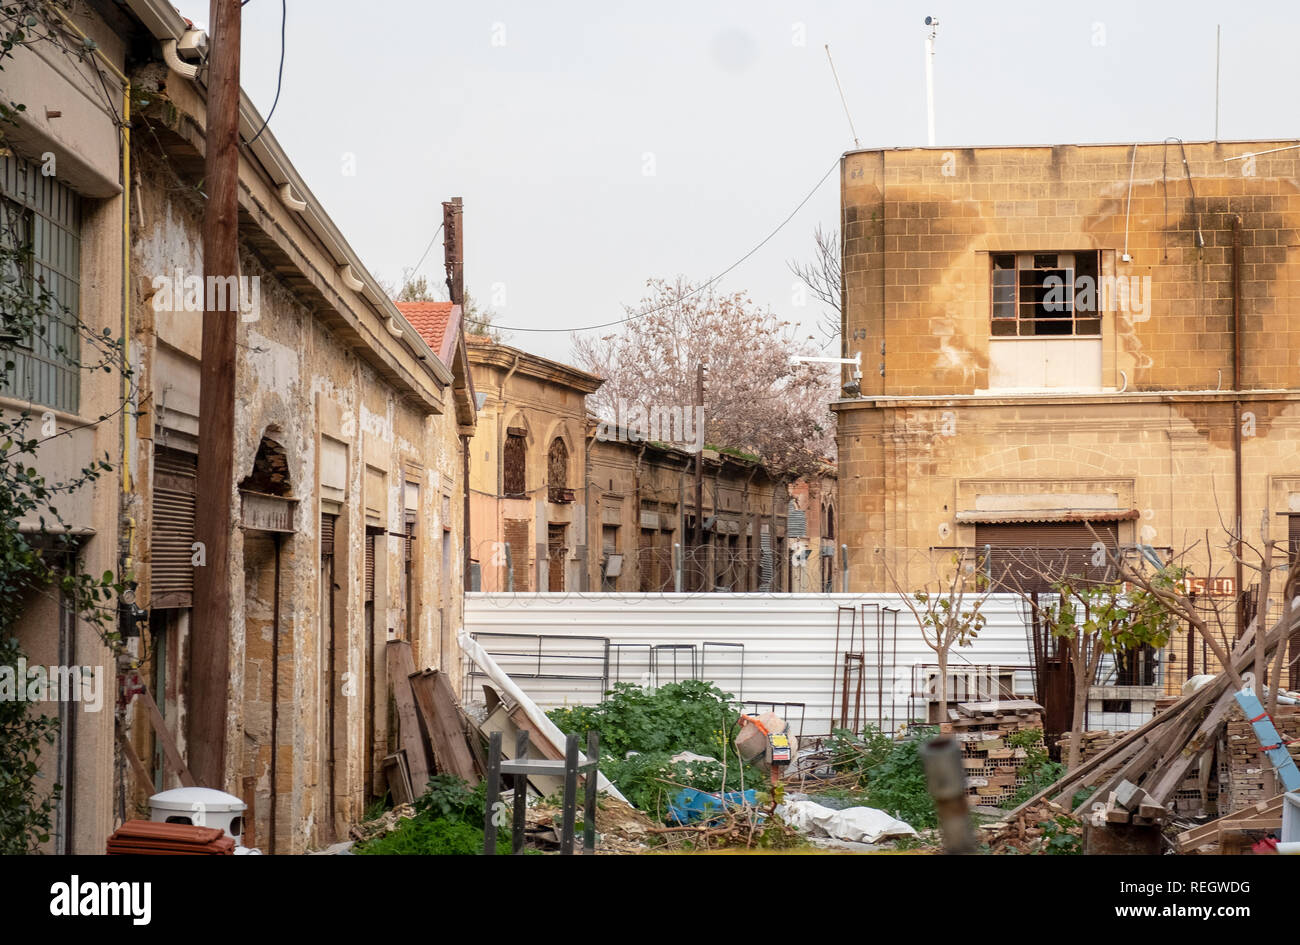 A view across the Buffer zone in central Nicosia, Cyprus, this marks the green line between the Greek and Turkish parts of this divided city. - Stock Image